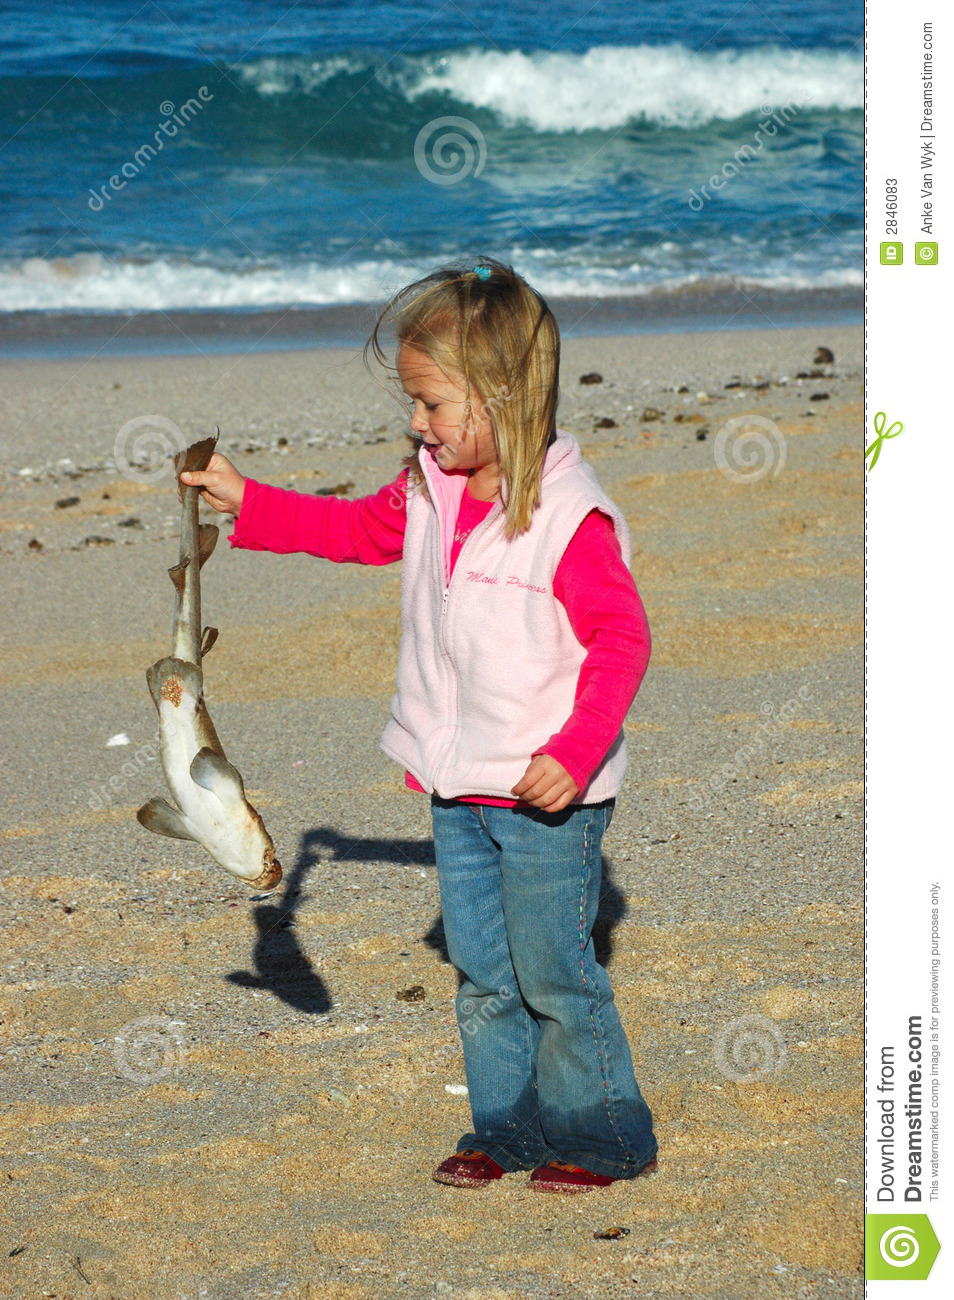 beach pollution stock image image of children